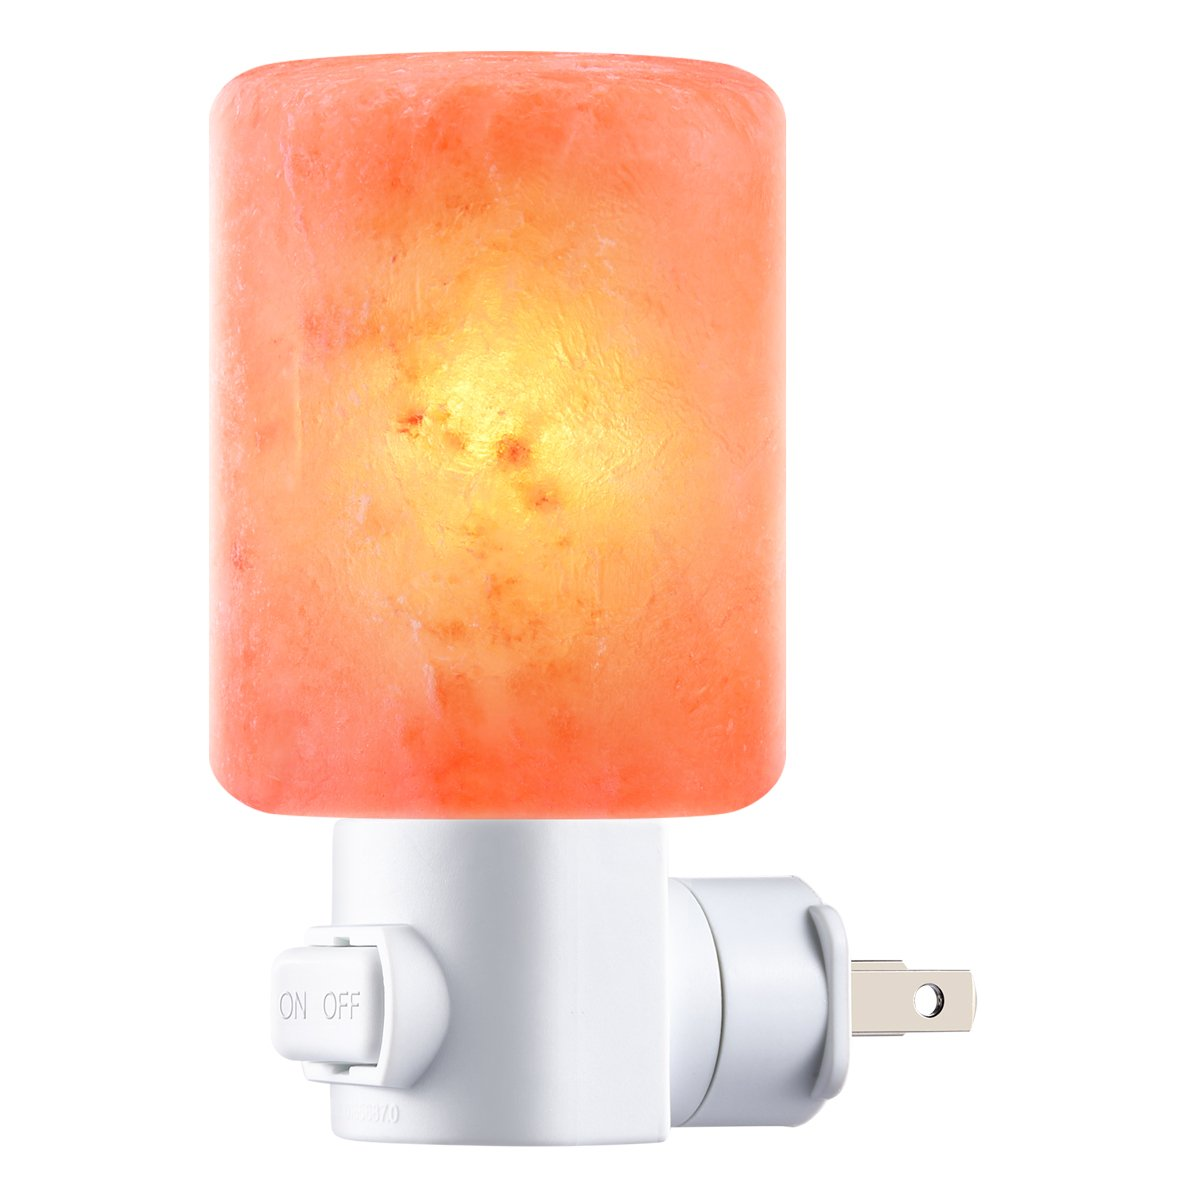 AMIR Salt Lamp, Natural Himalayan Crystal Salt Light with 2 Bulbs (1 Colorful Bulb), 11.2 Ounces Mini Hand Carved Night Light with UL-Approved Wall Plug for Air Purifying, Lighting and Decoration